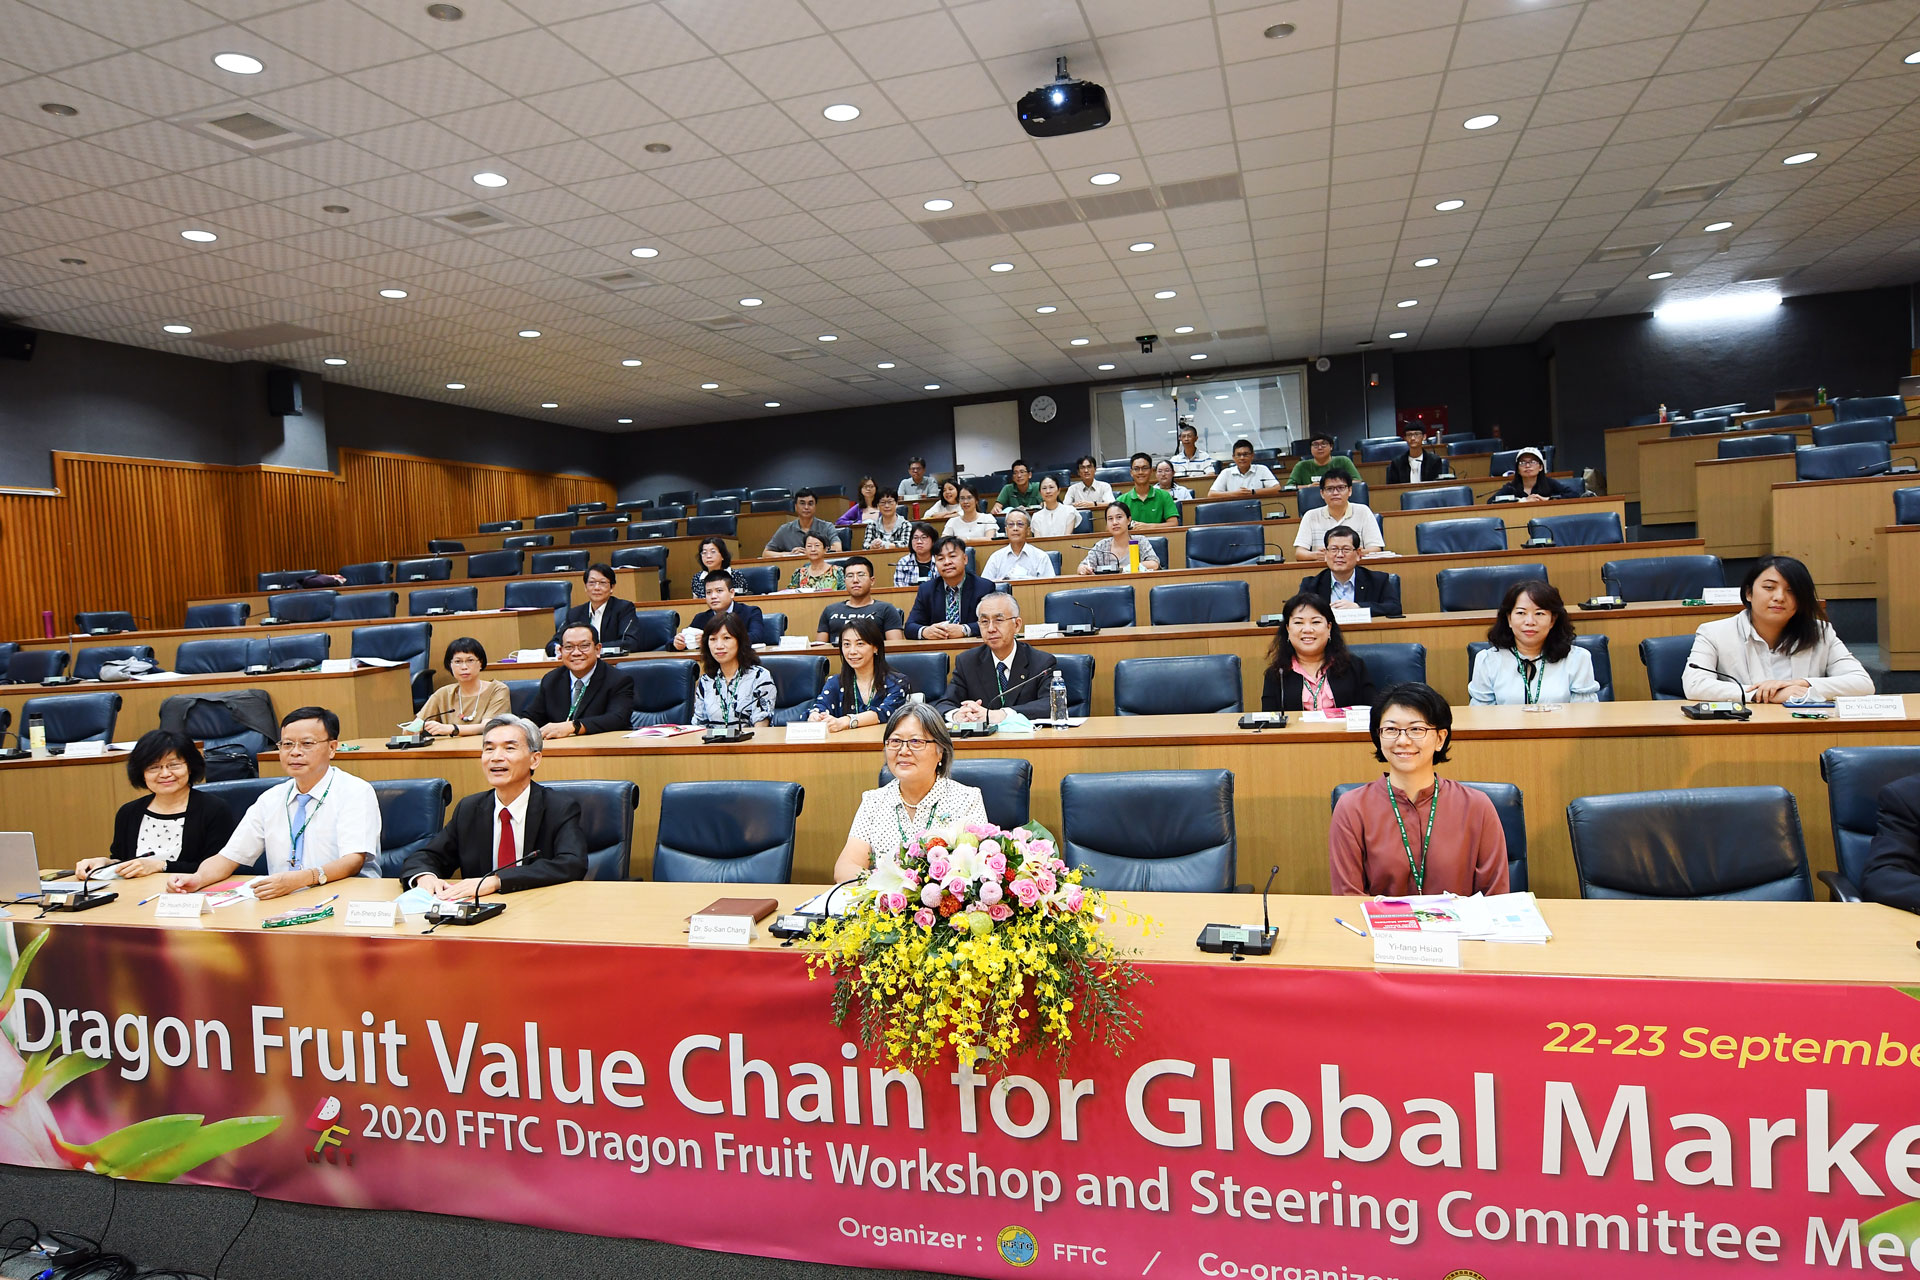 2020 Dragon Fruit Workshop and Steering Committee Meeting - Dragon Fruit Value Chain for Global Market